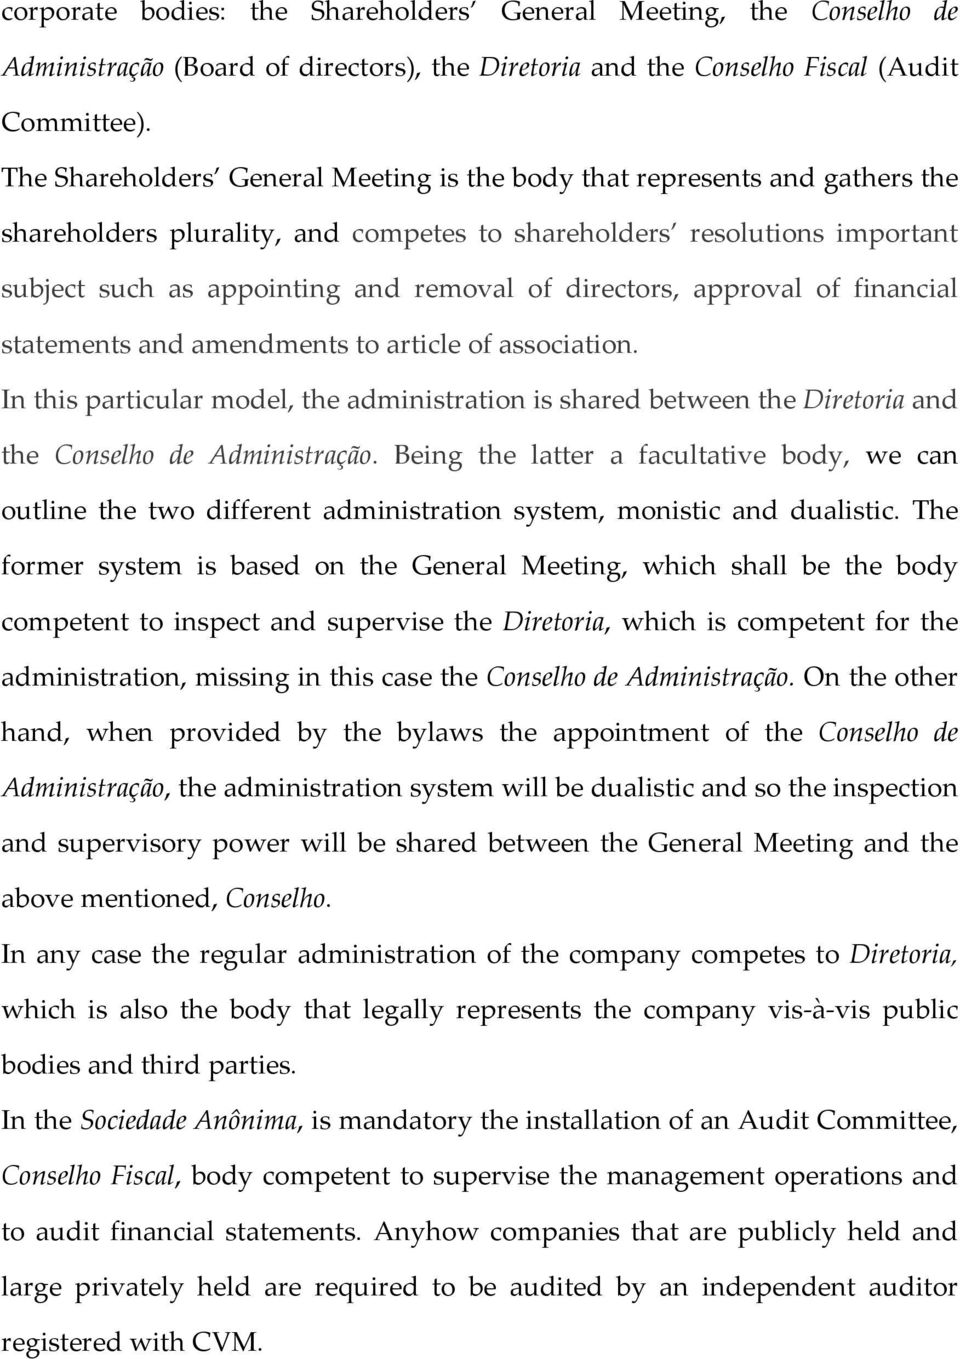 directors, approval of financial statements and amendments to article of association. In this particular model, the administration is shared between the Diretoria and the Conselho de Administração.